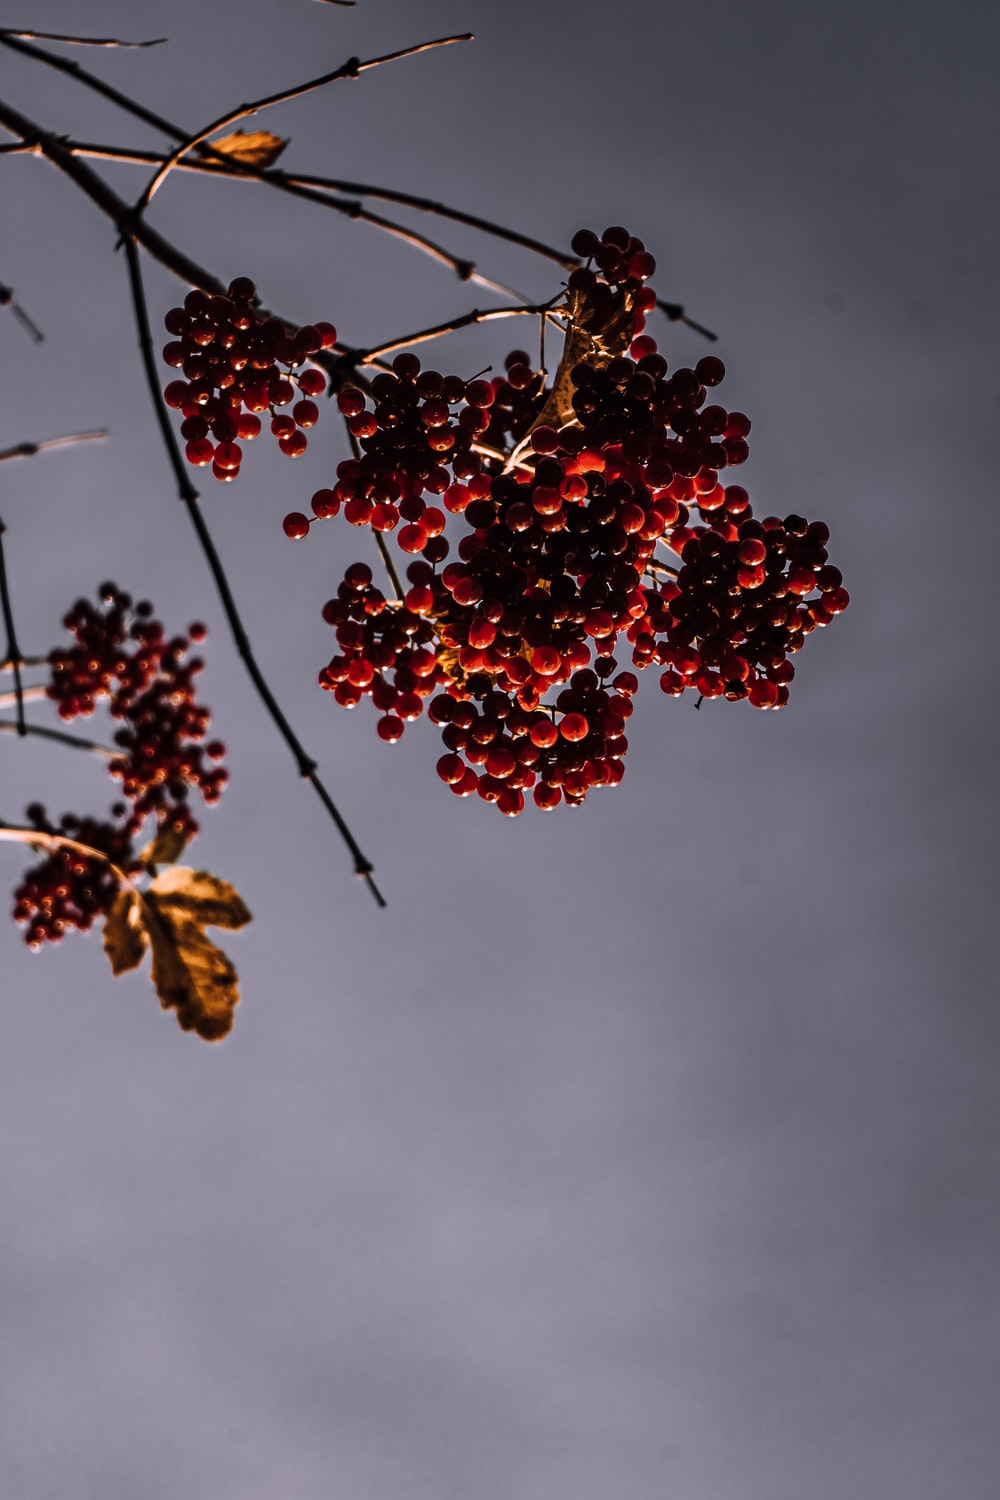 brown round fruits on tree